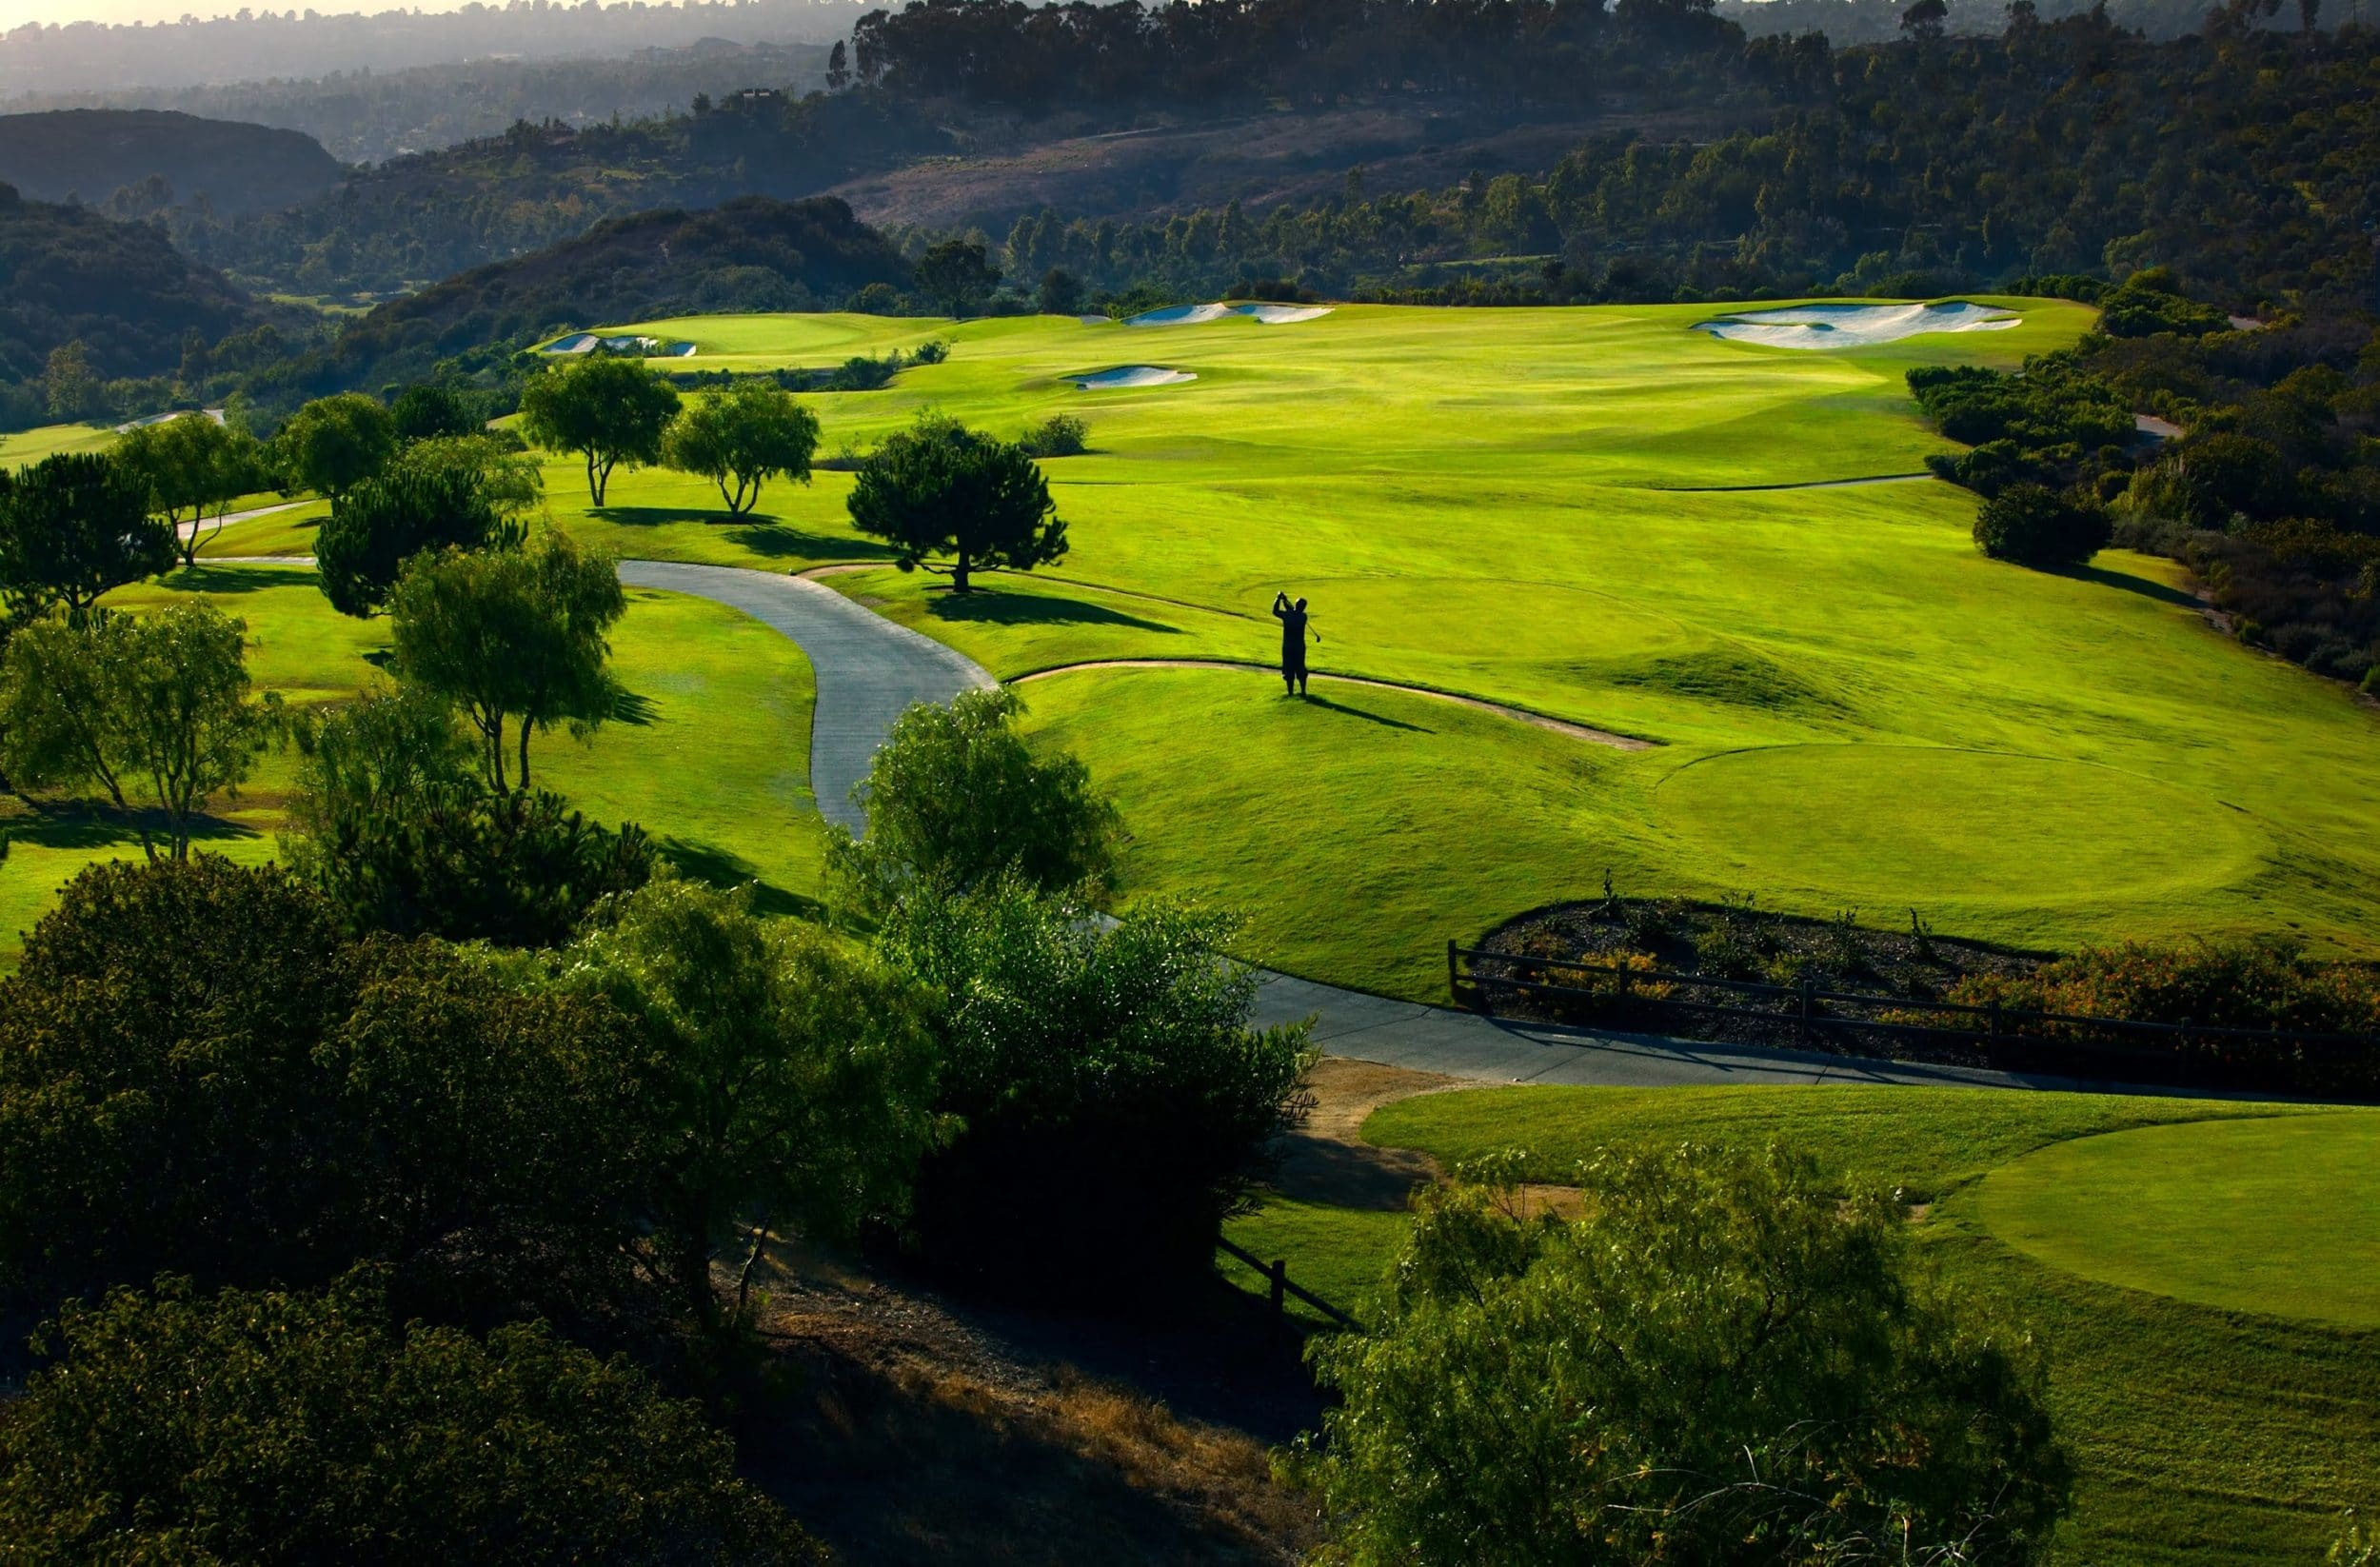 The Grand Golf Course at Fairmont Grand Del Mar in San Diego